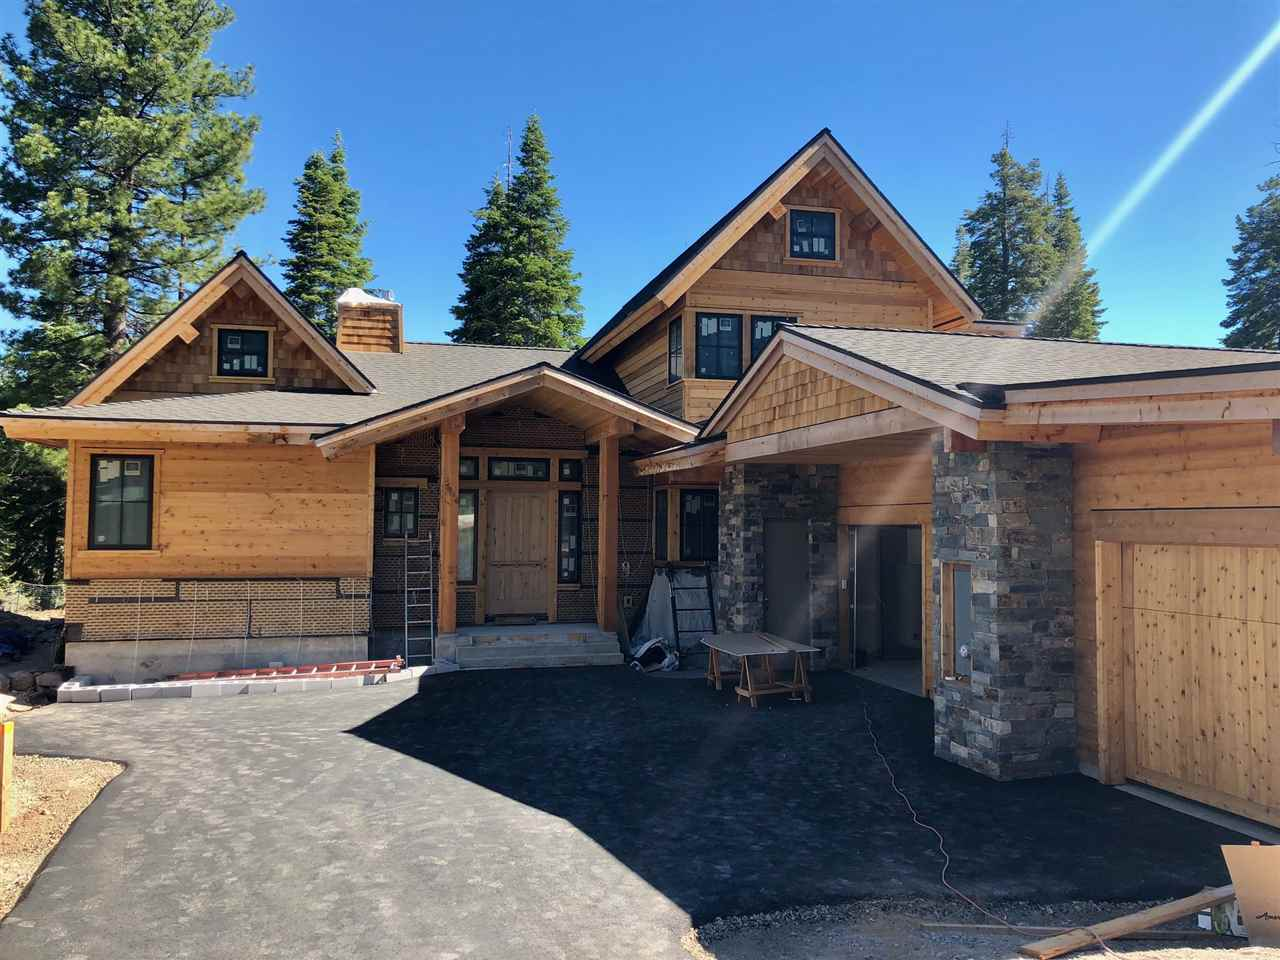 Image for 9364 Nine Bark Road, Truckee, CA 96161